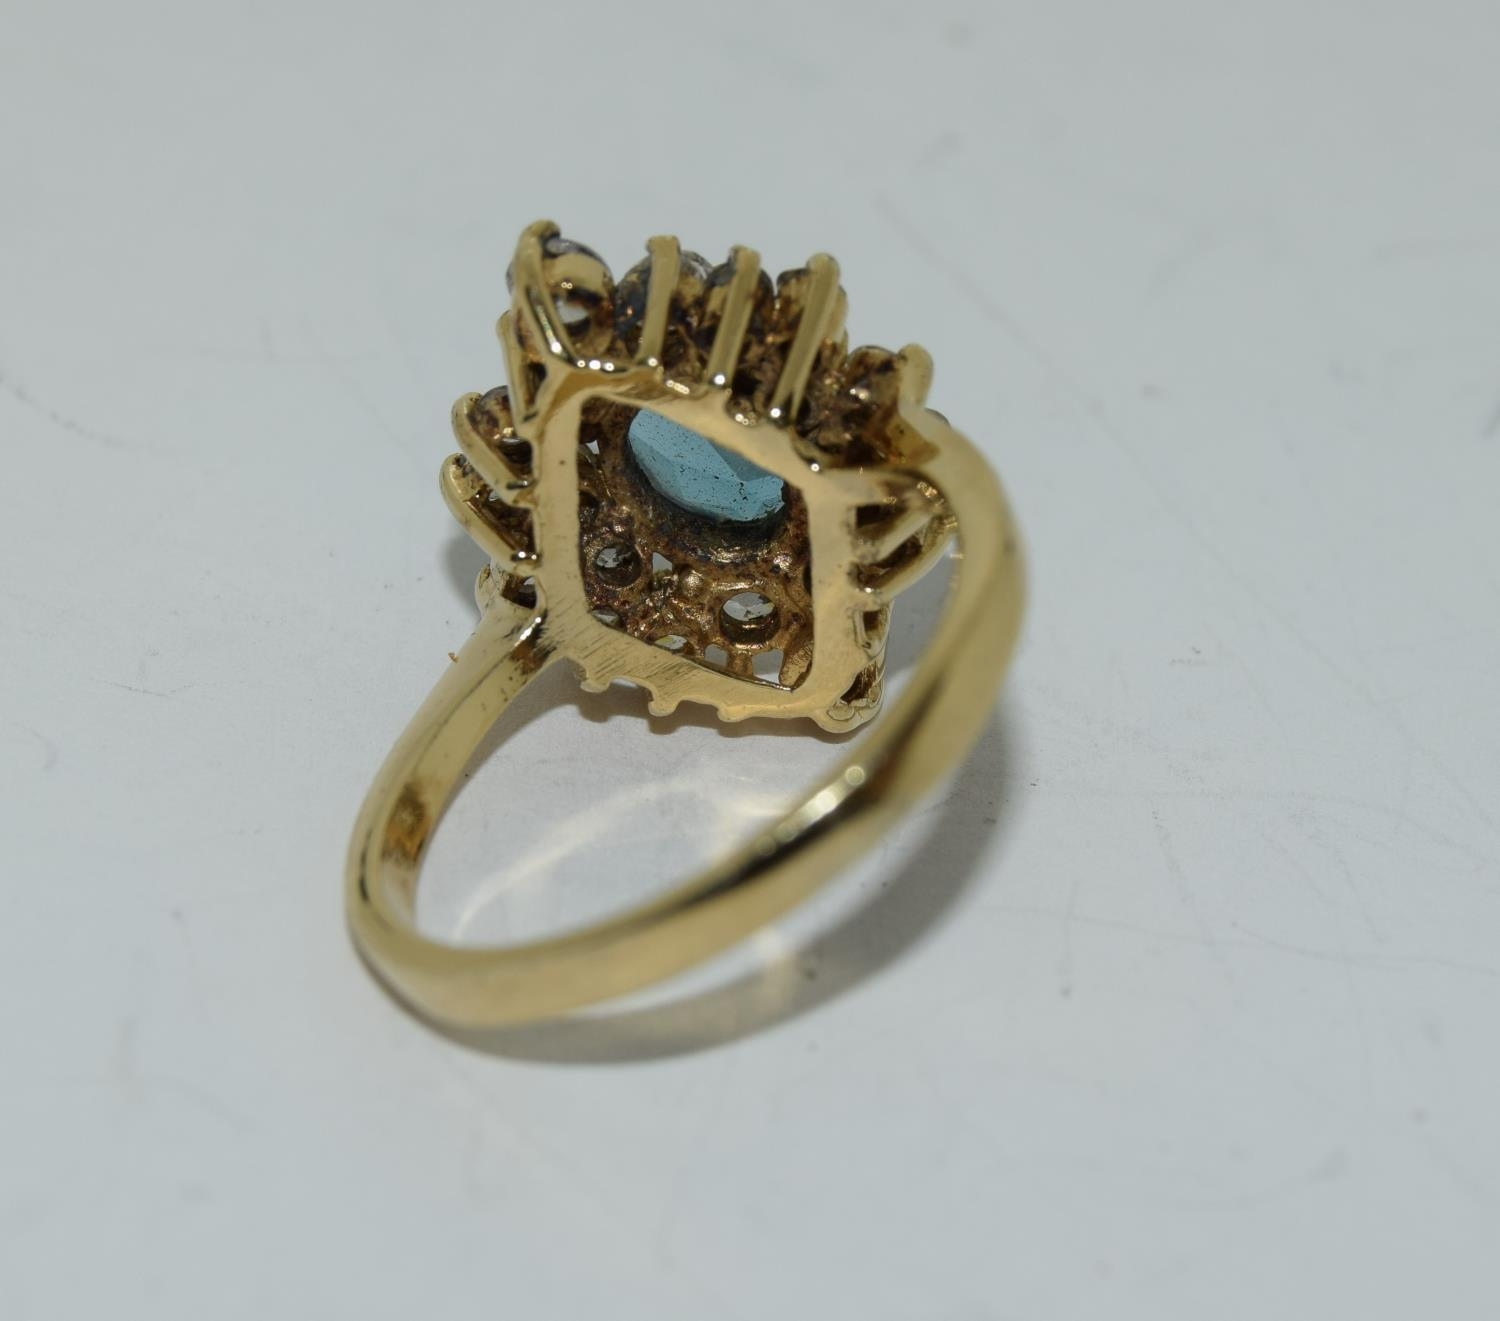 Blue Topaz gold on silver cluster ring, Size N 1/2. - Image 3 of 3